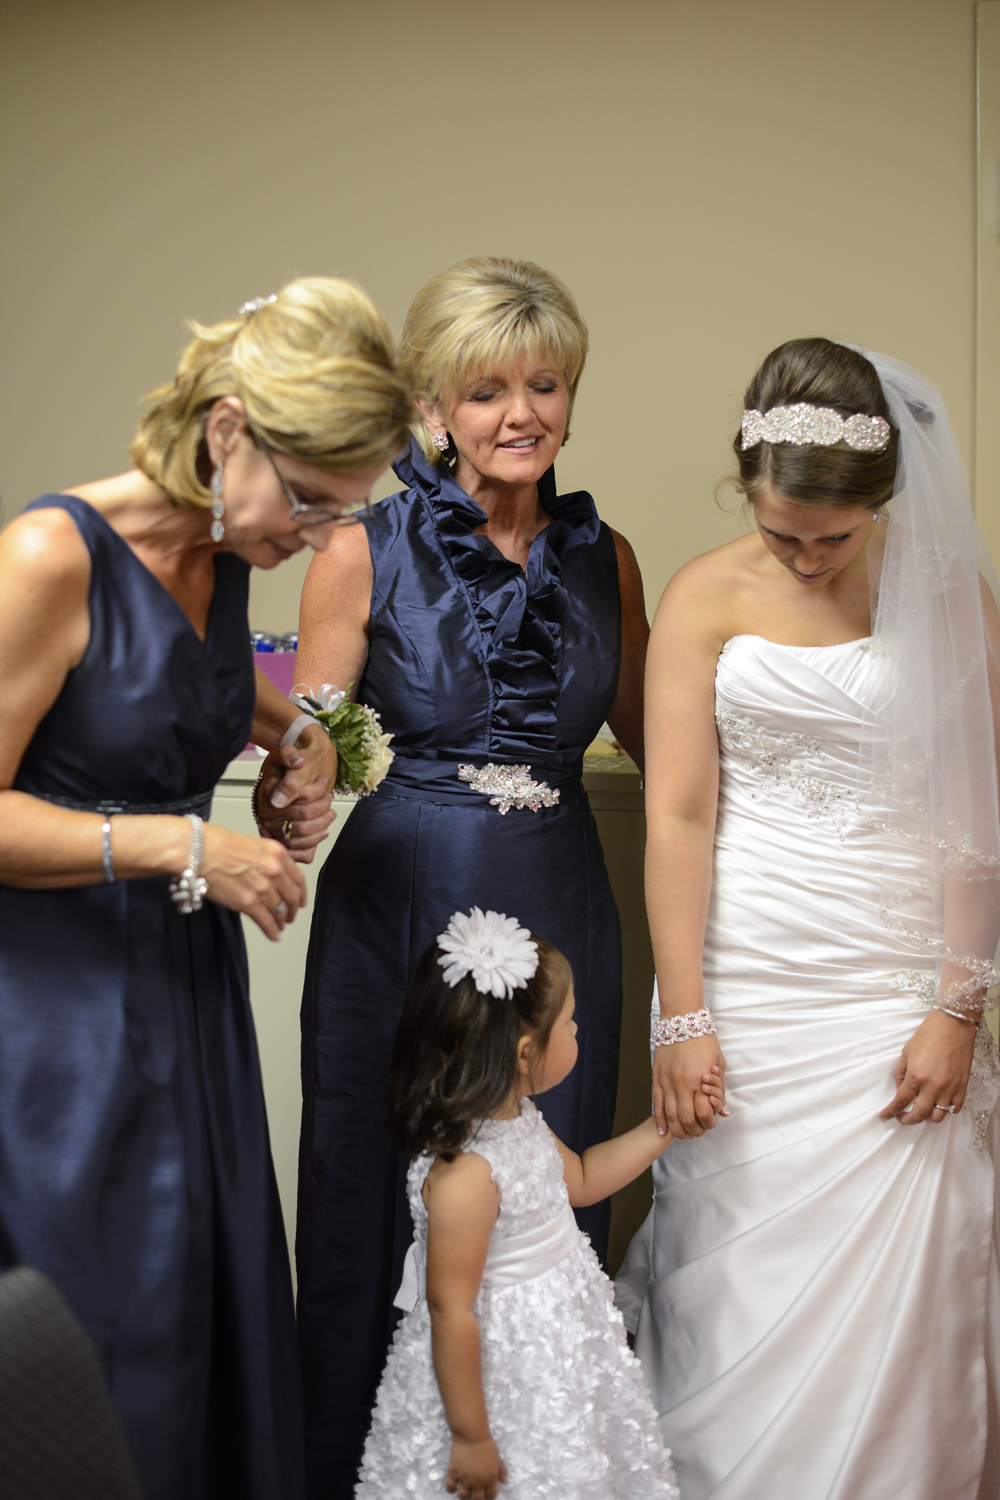 Bridal party praying moments before a wedding ceremony at Liberty Baptist Church